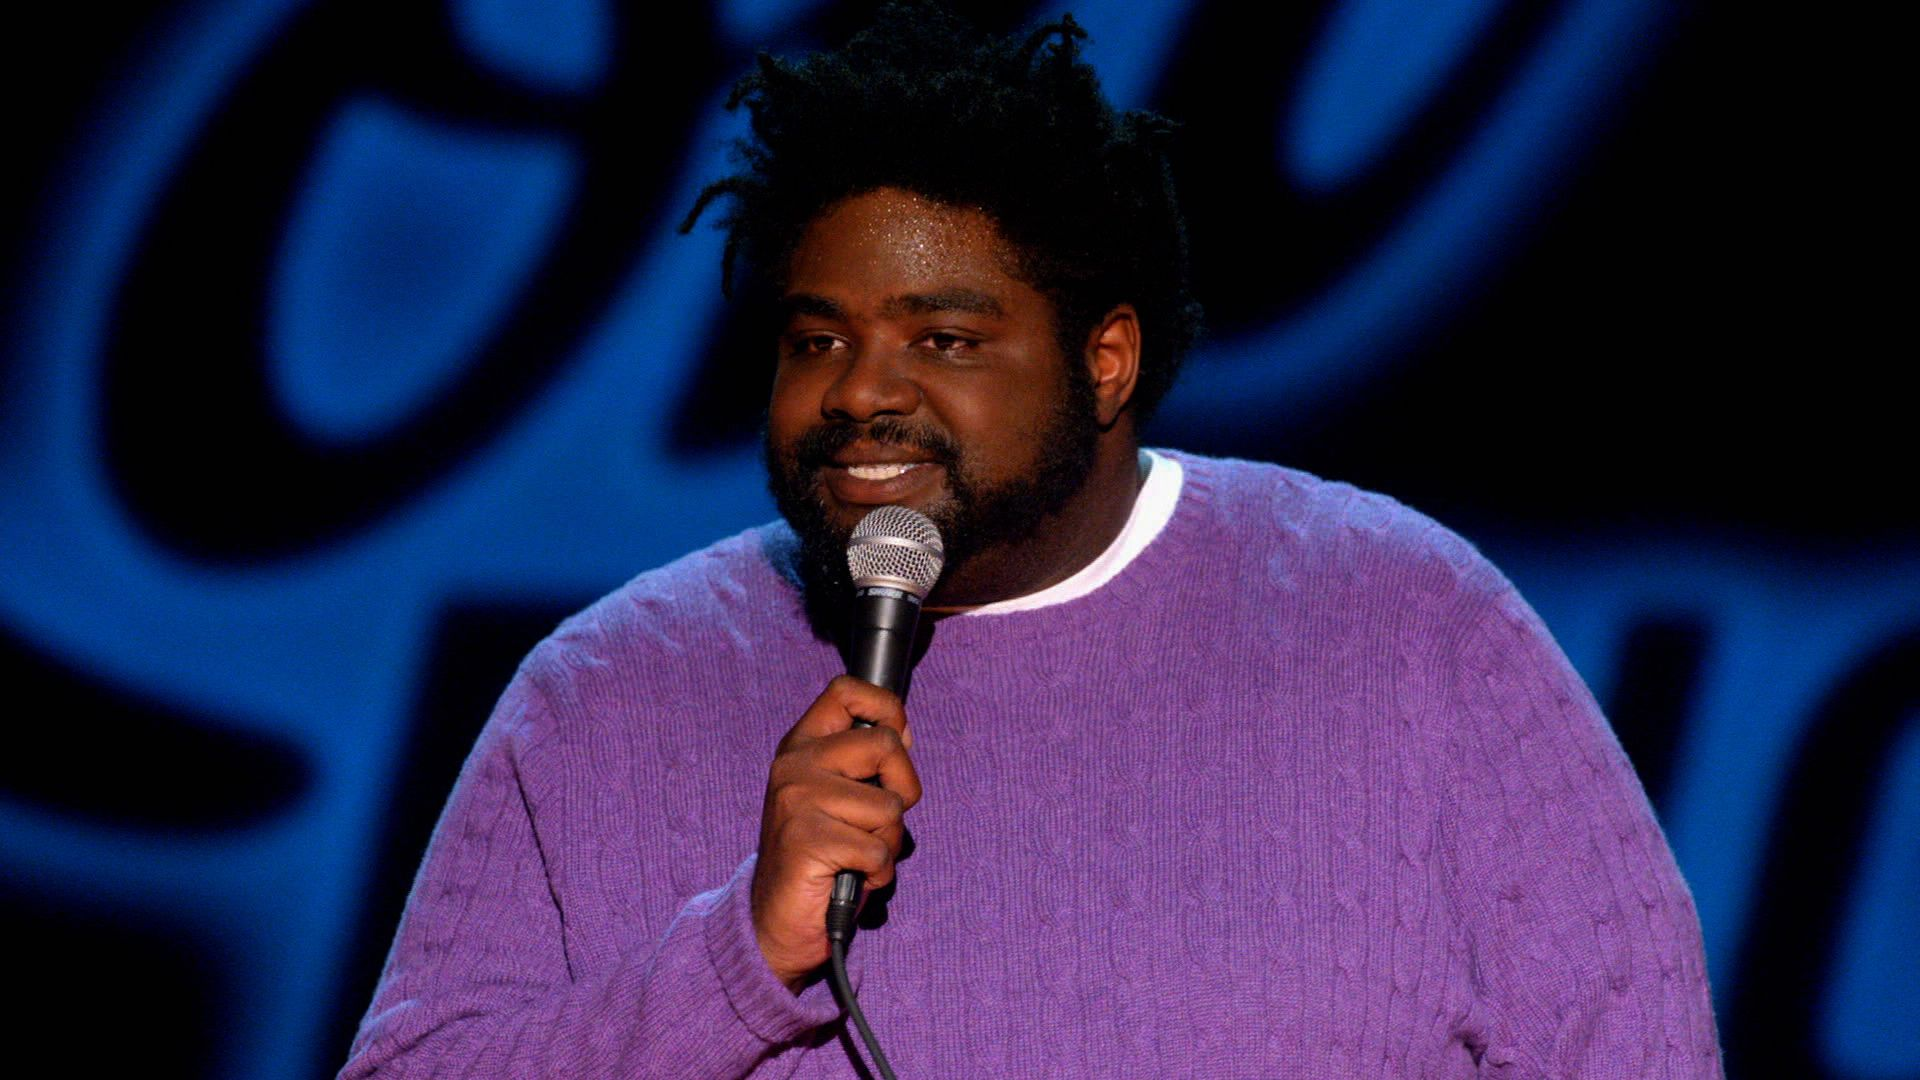 ron funches autismron funches trolls, ron funches hair up, ron funches weight loss, ron funches lose weight, ron funches, ron funches stand up, ron funches instagram, ron funches twitter, ron funches autism, ron funches wrestling, ron funches the half hour, ron funches tour, ron funches son, ron funches net worth, ron funches wife, ron funches laugh, ron funches shirt, ron funches youtube, ron funches new girl, ron funches imdb